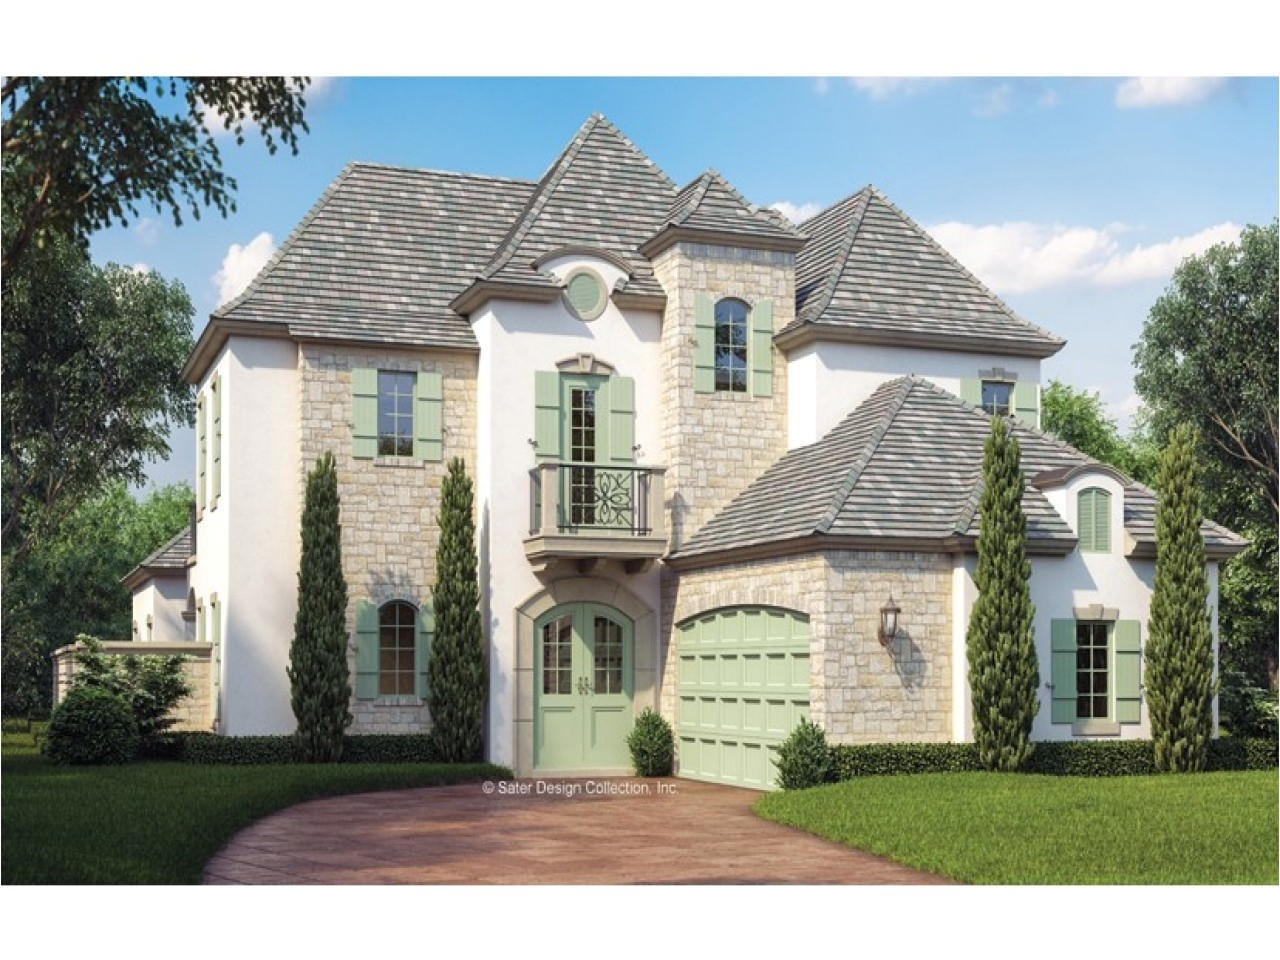 French Chateau Home Plans French Country House Plans with Courtyard French Country